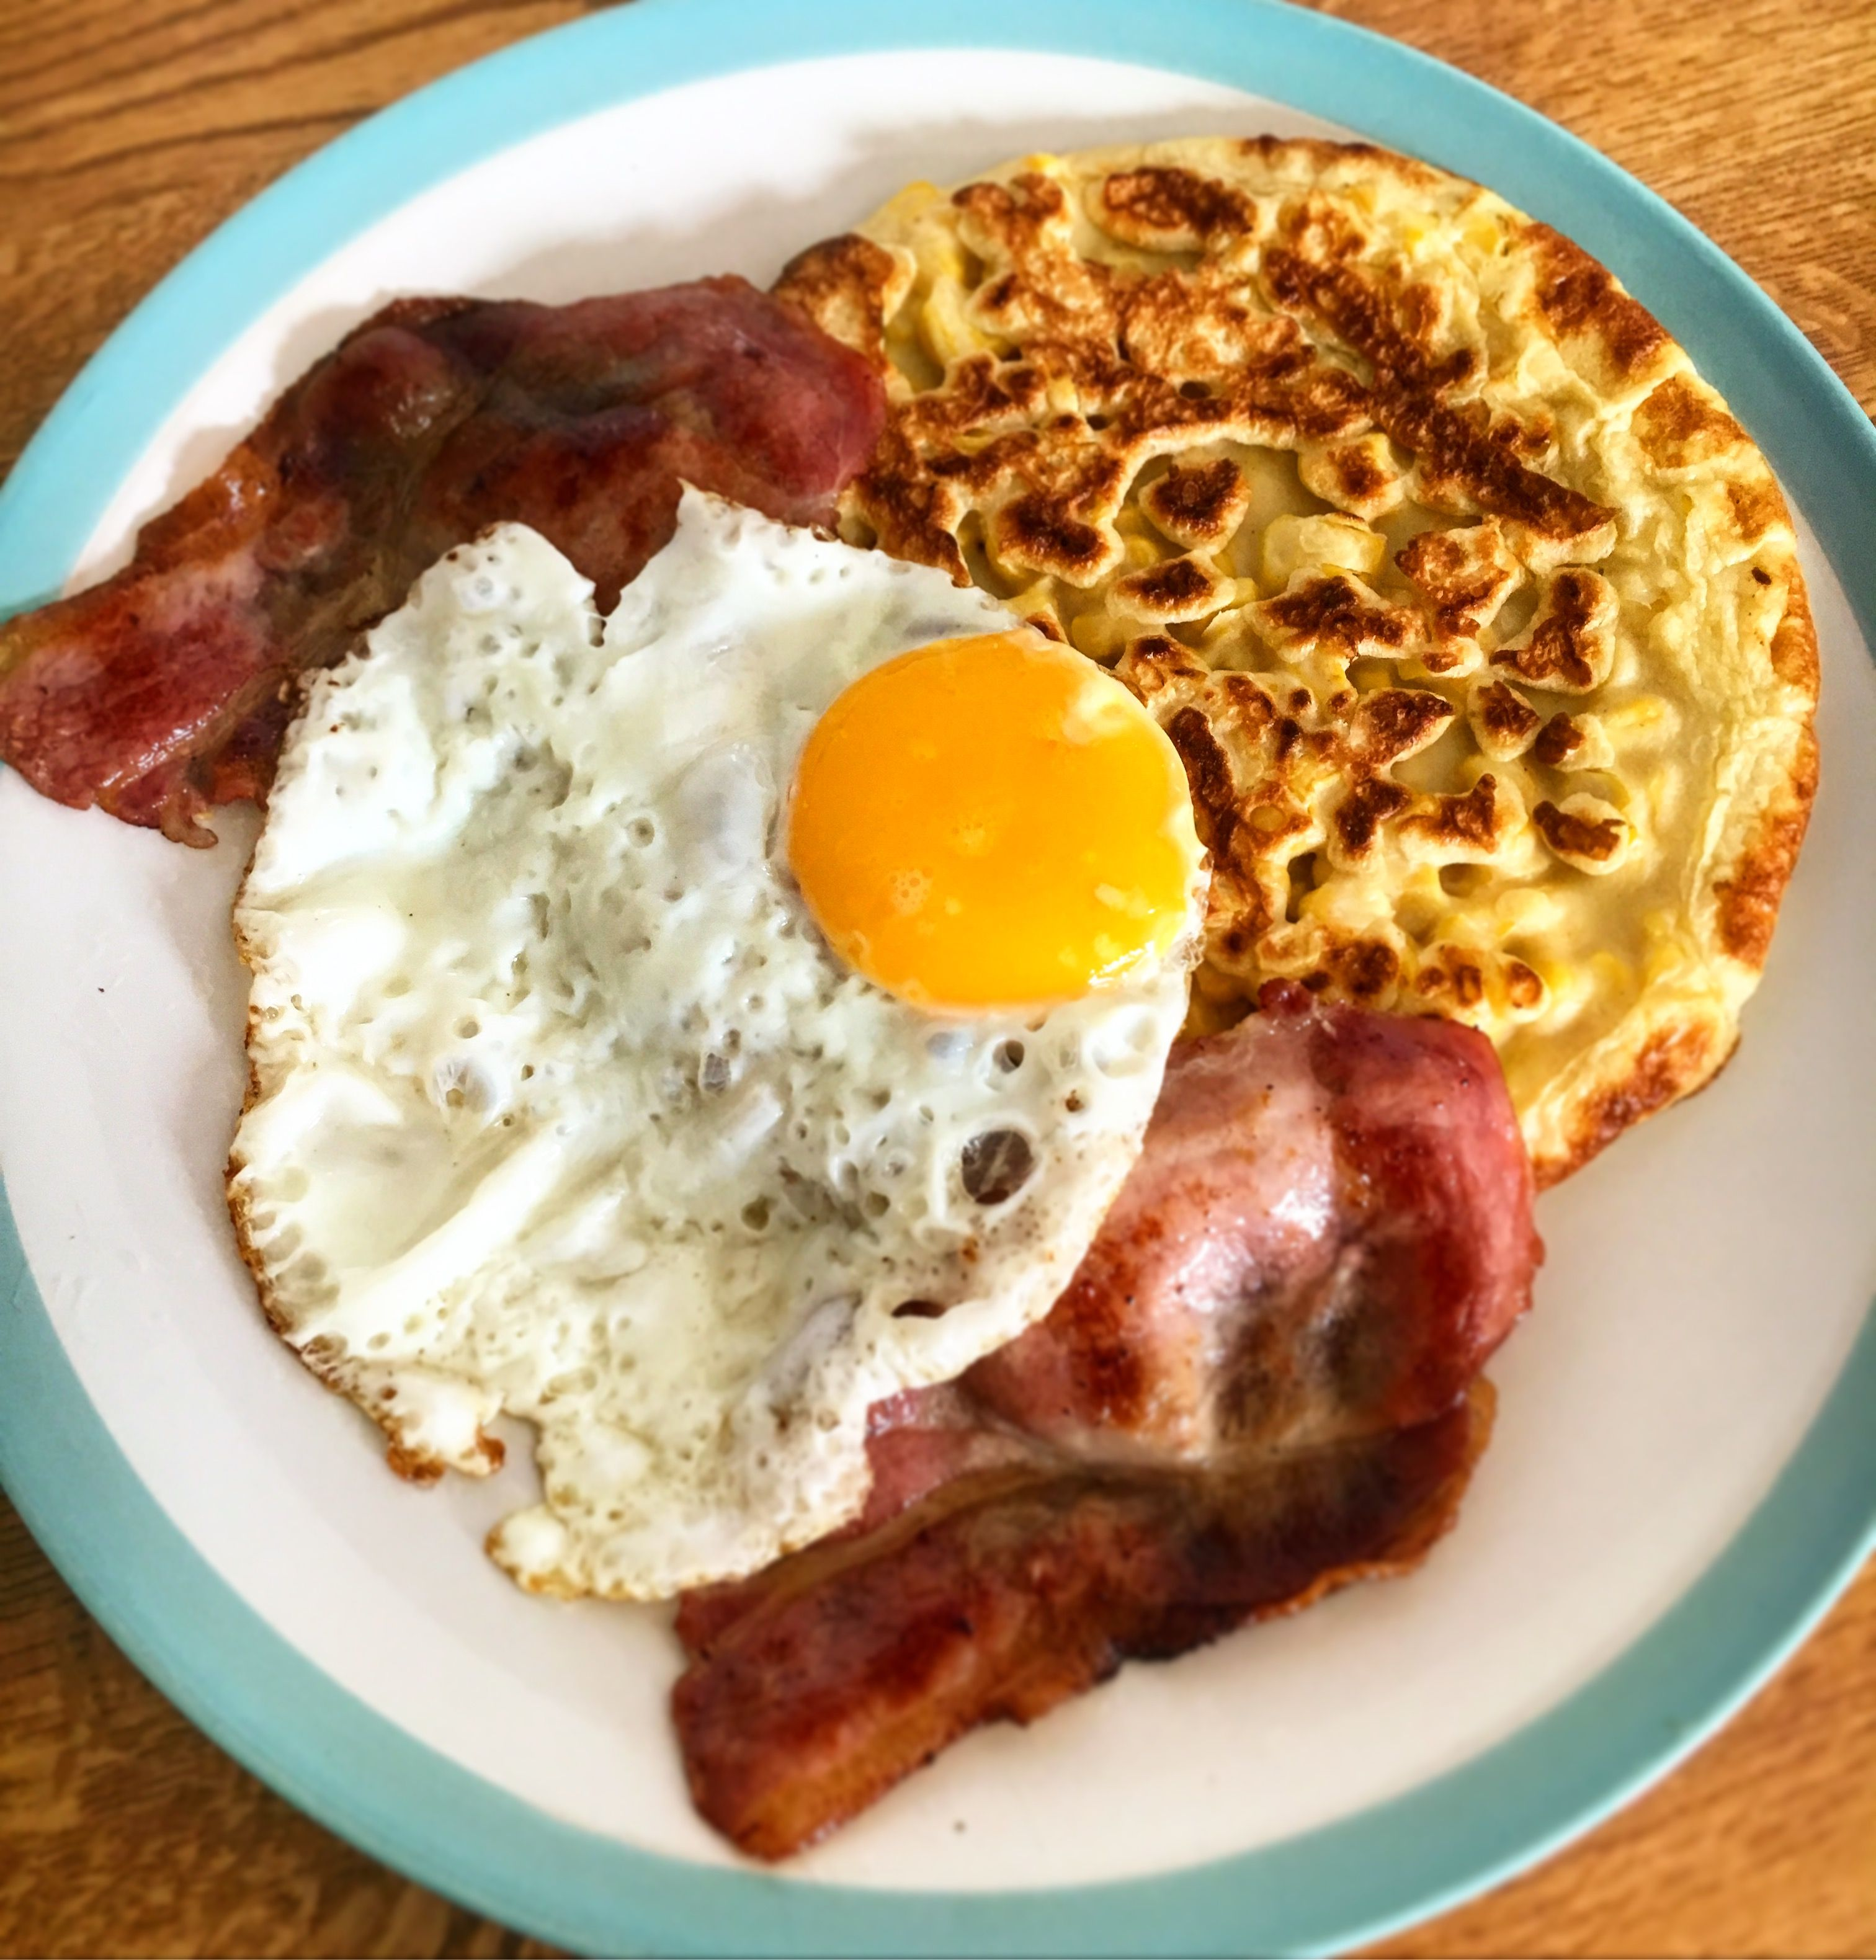 Giant sweetcorn fritter with bacon and egg